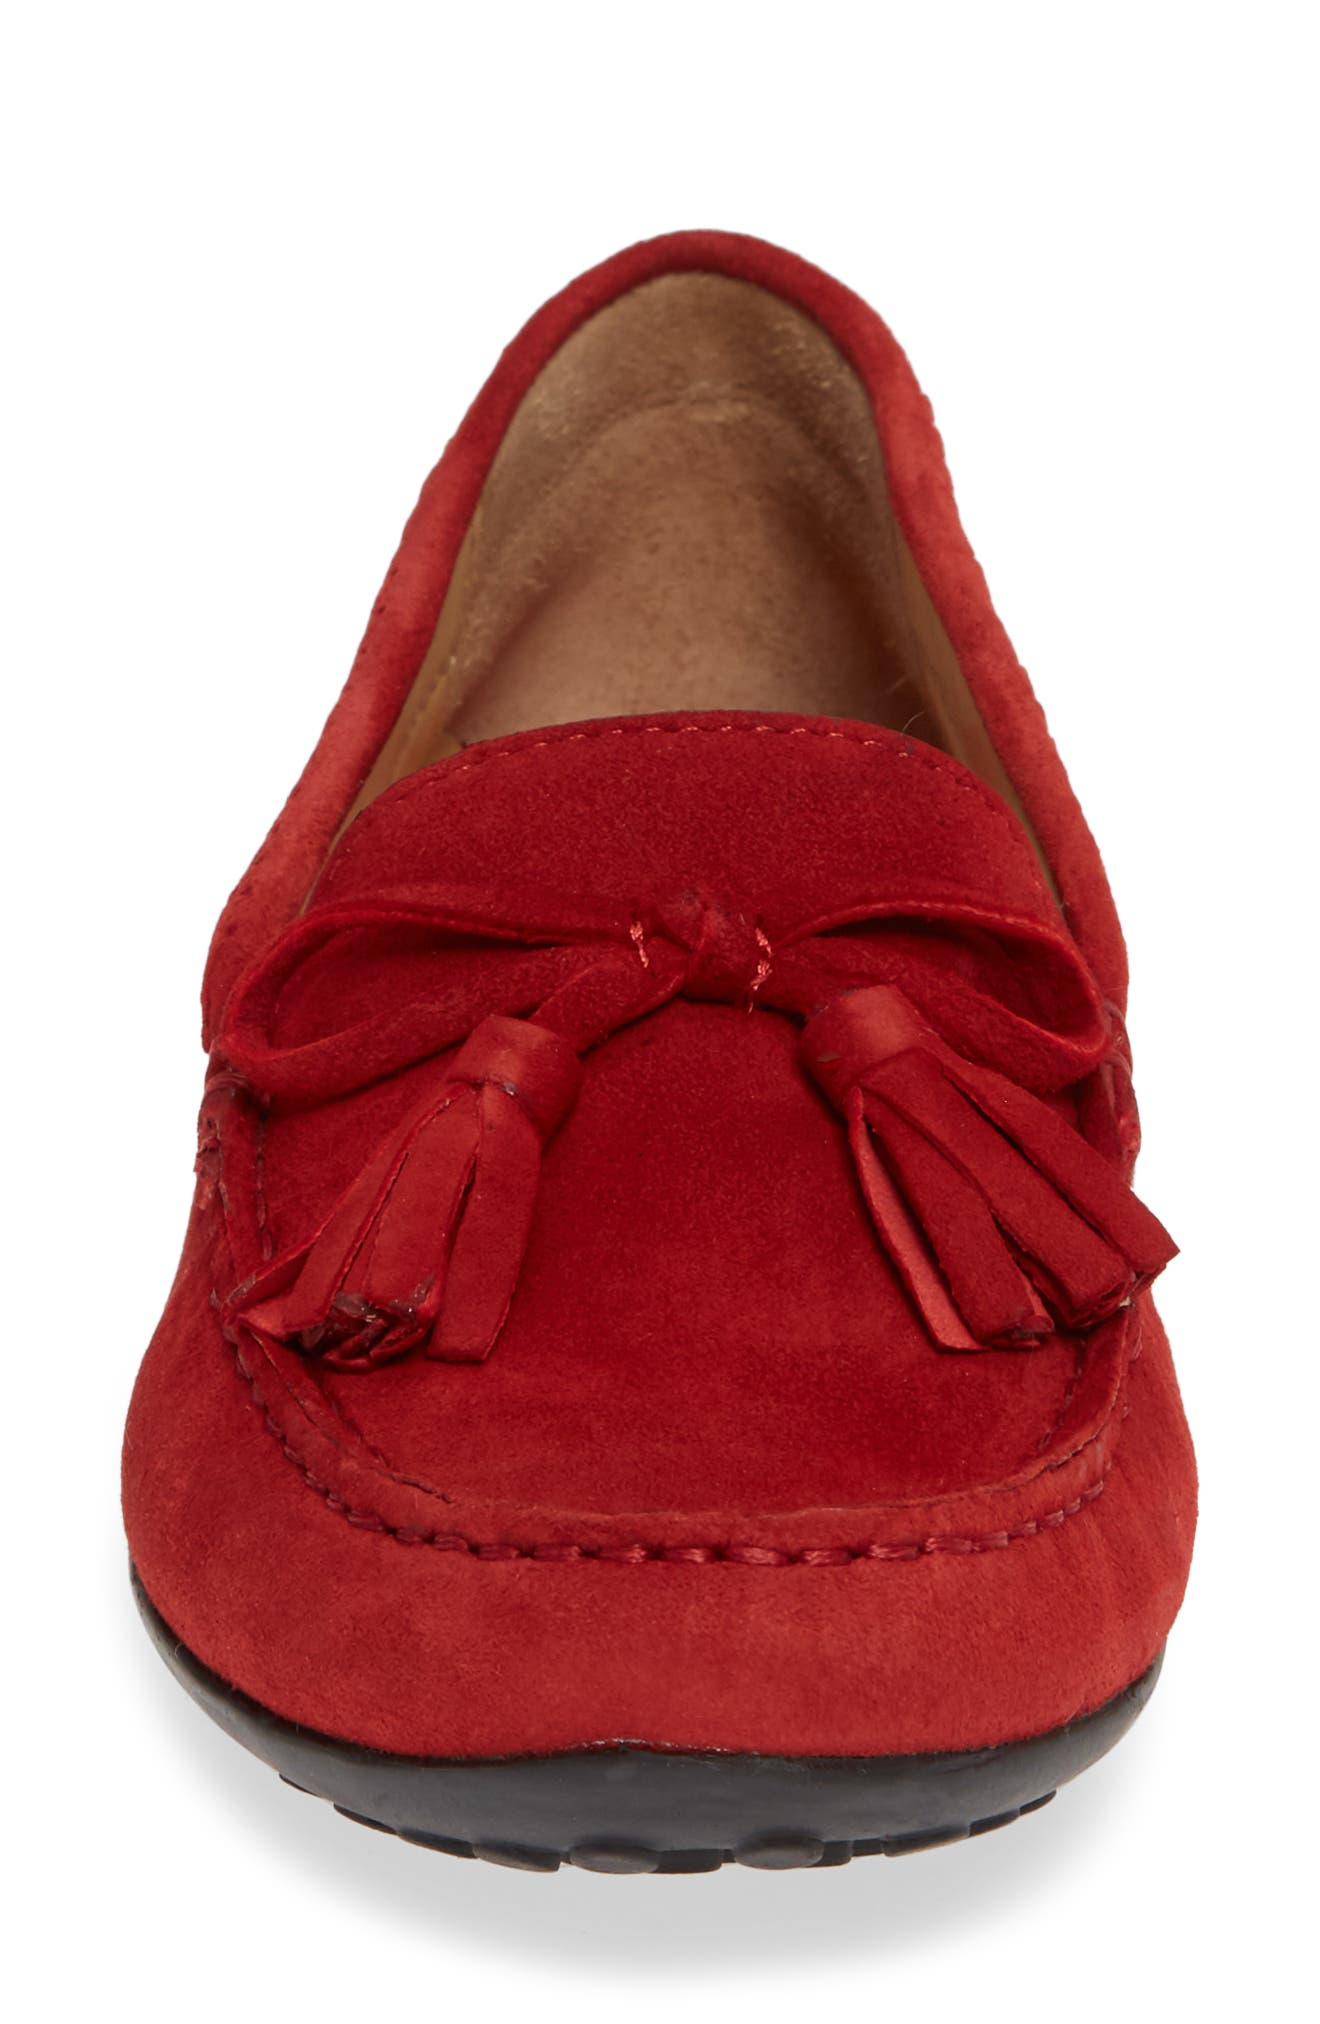 Acajou Driving Moccasin,                             Alternate thumbnail 5, color,                             Red Suede